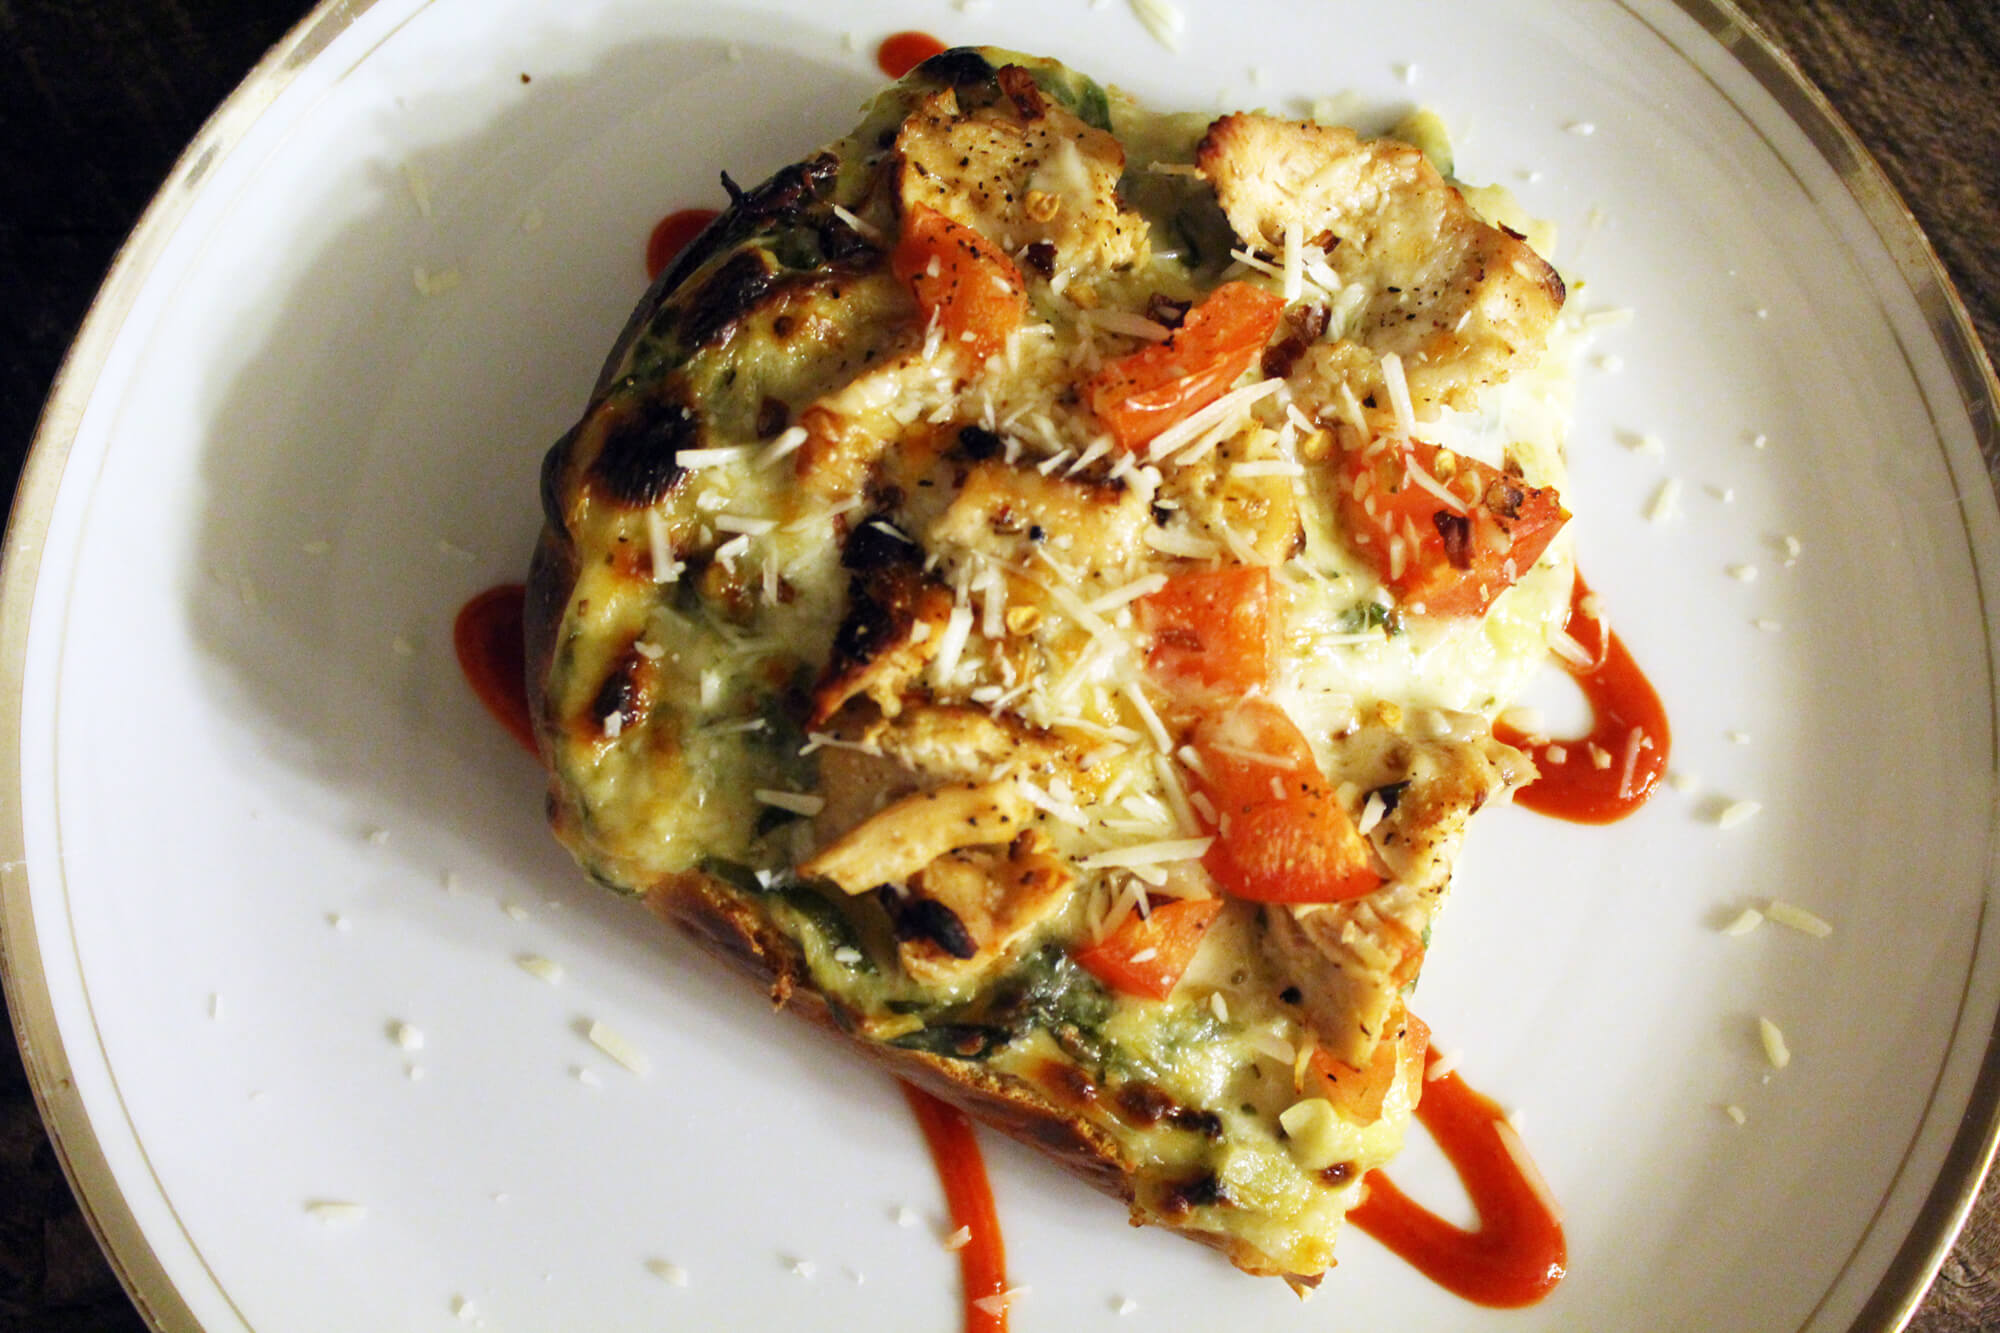 If you love spinach artichoke dip, and you love pizza, why not combine the two? This cheesy pizza bread recipe features fresh spinach, artichokes & chicken.